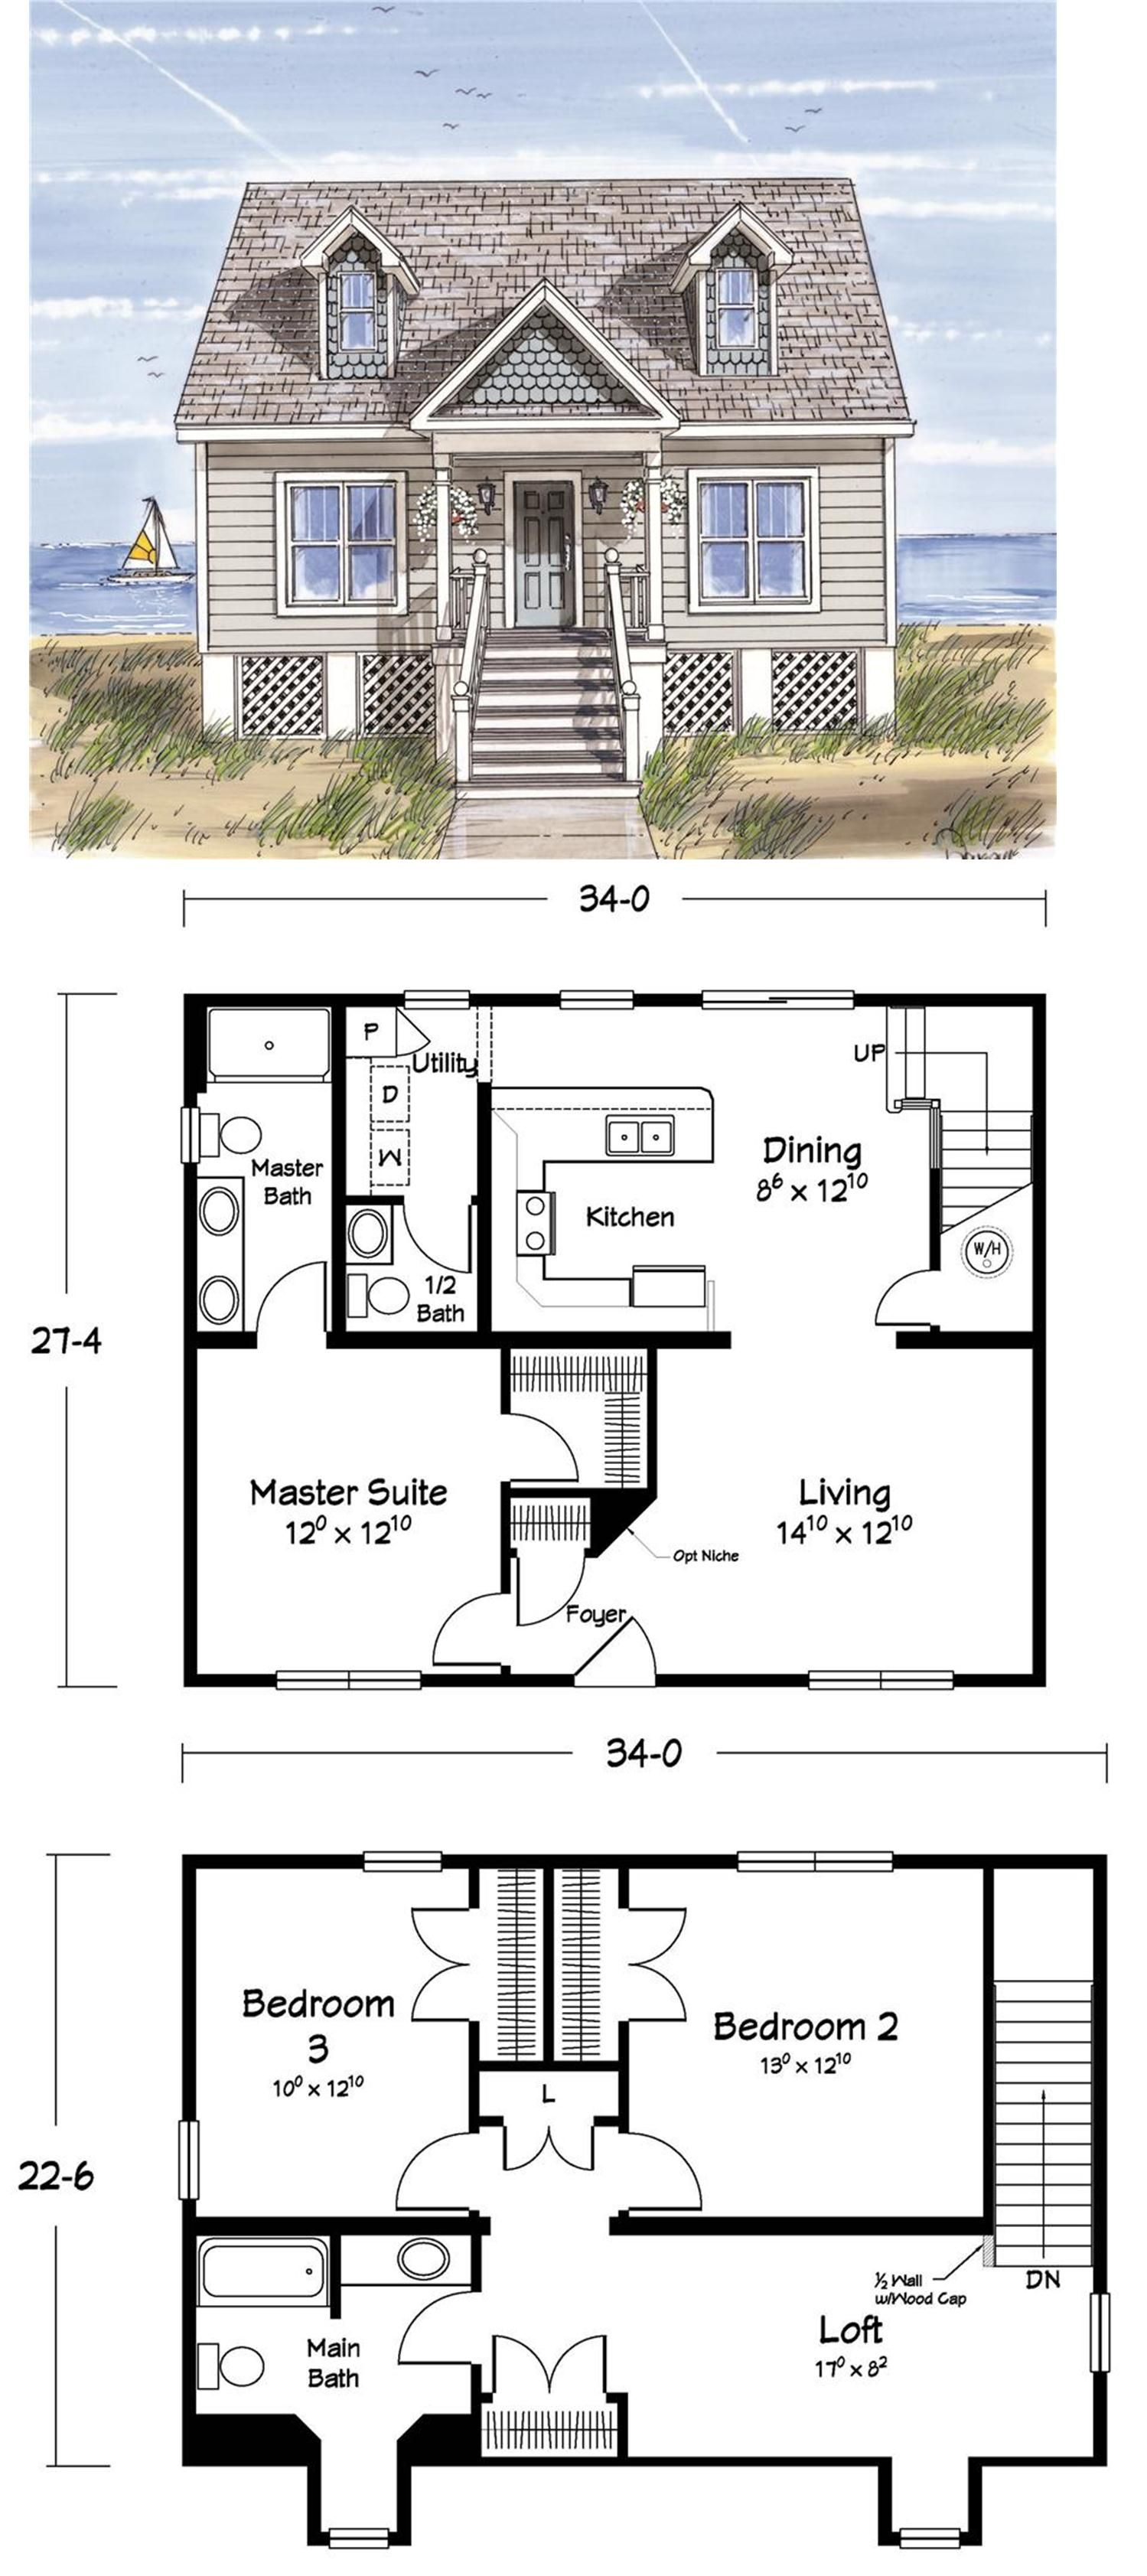 Floor Plans Modular Home Manufacturer Ritz Craft Homes Pa Ny Nc Mi Nj Maine Me Nh Vt Ma Ct Dream House Plans Tiny Beach House House Blueprints